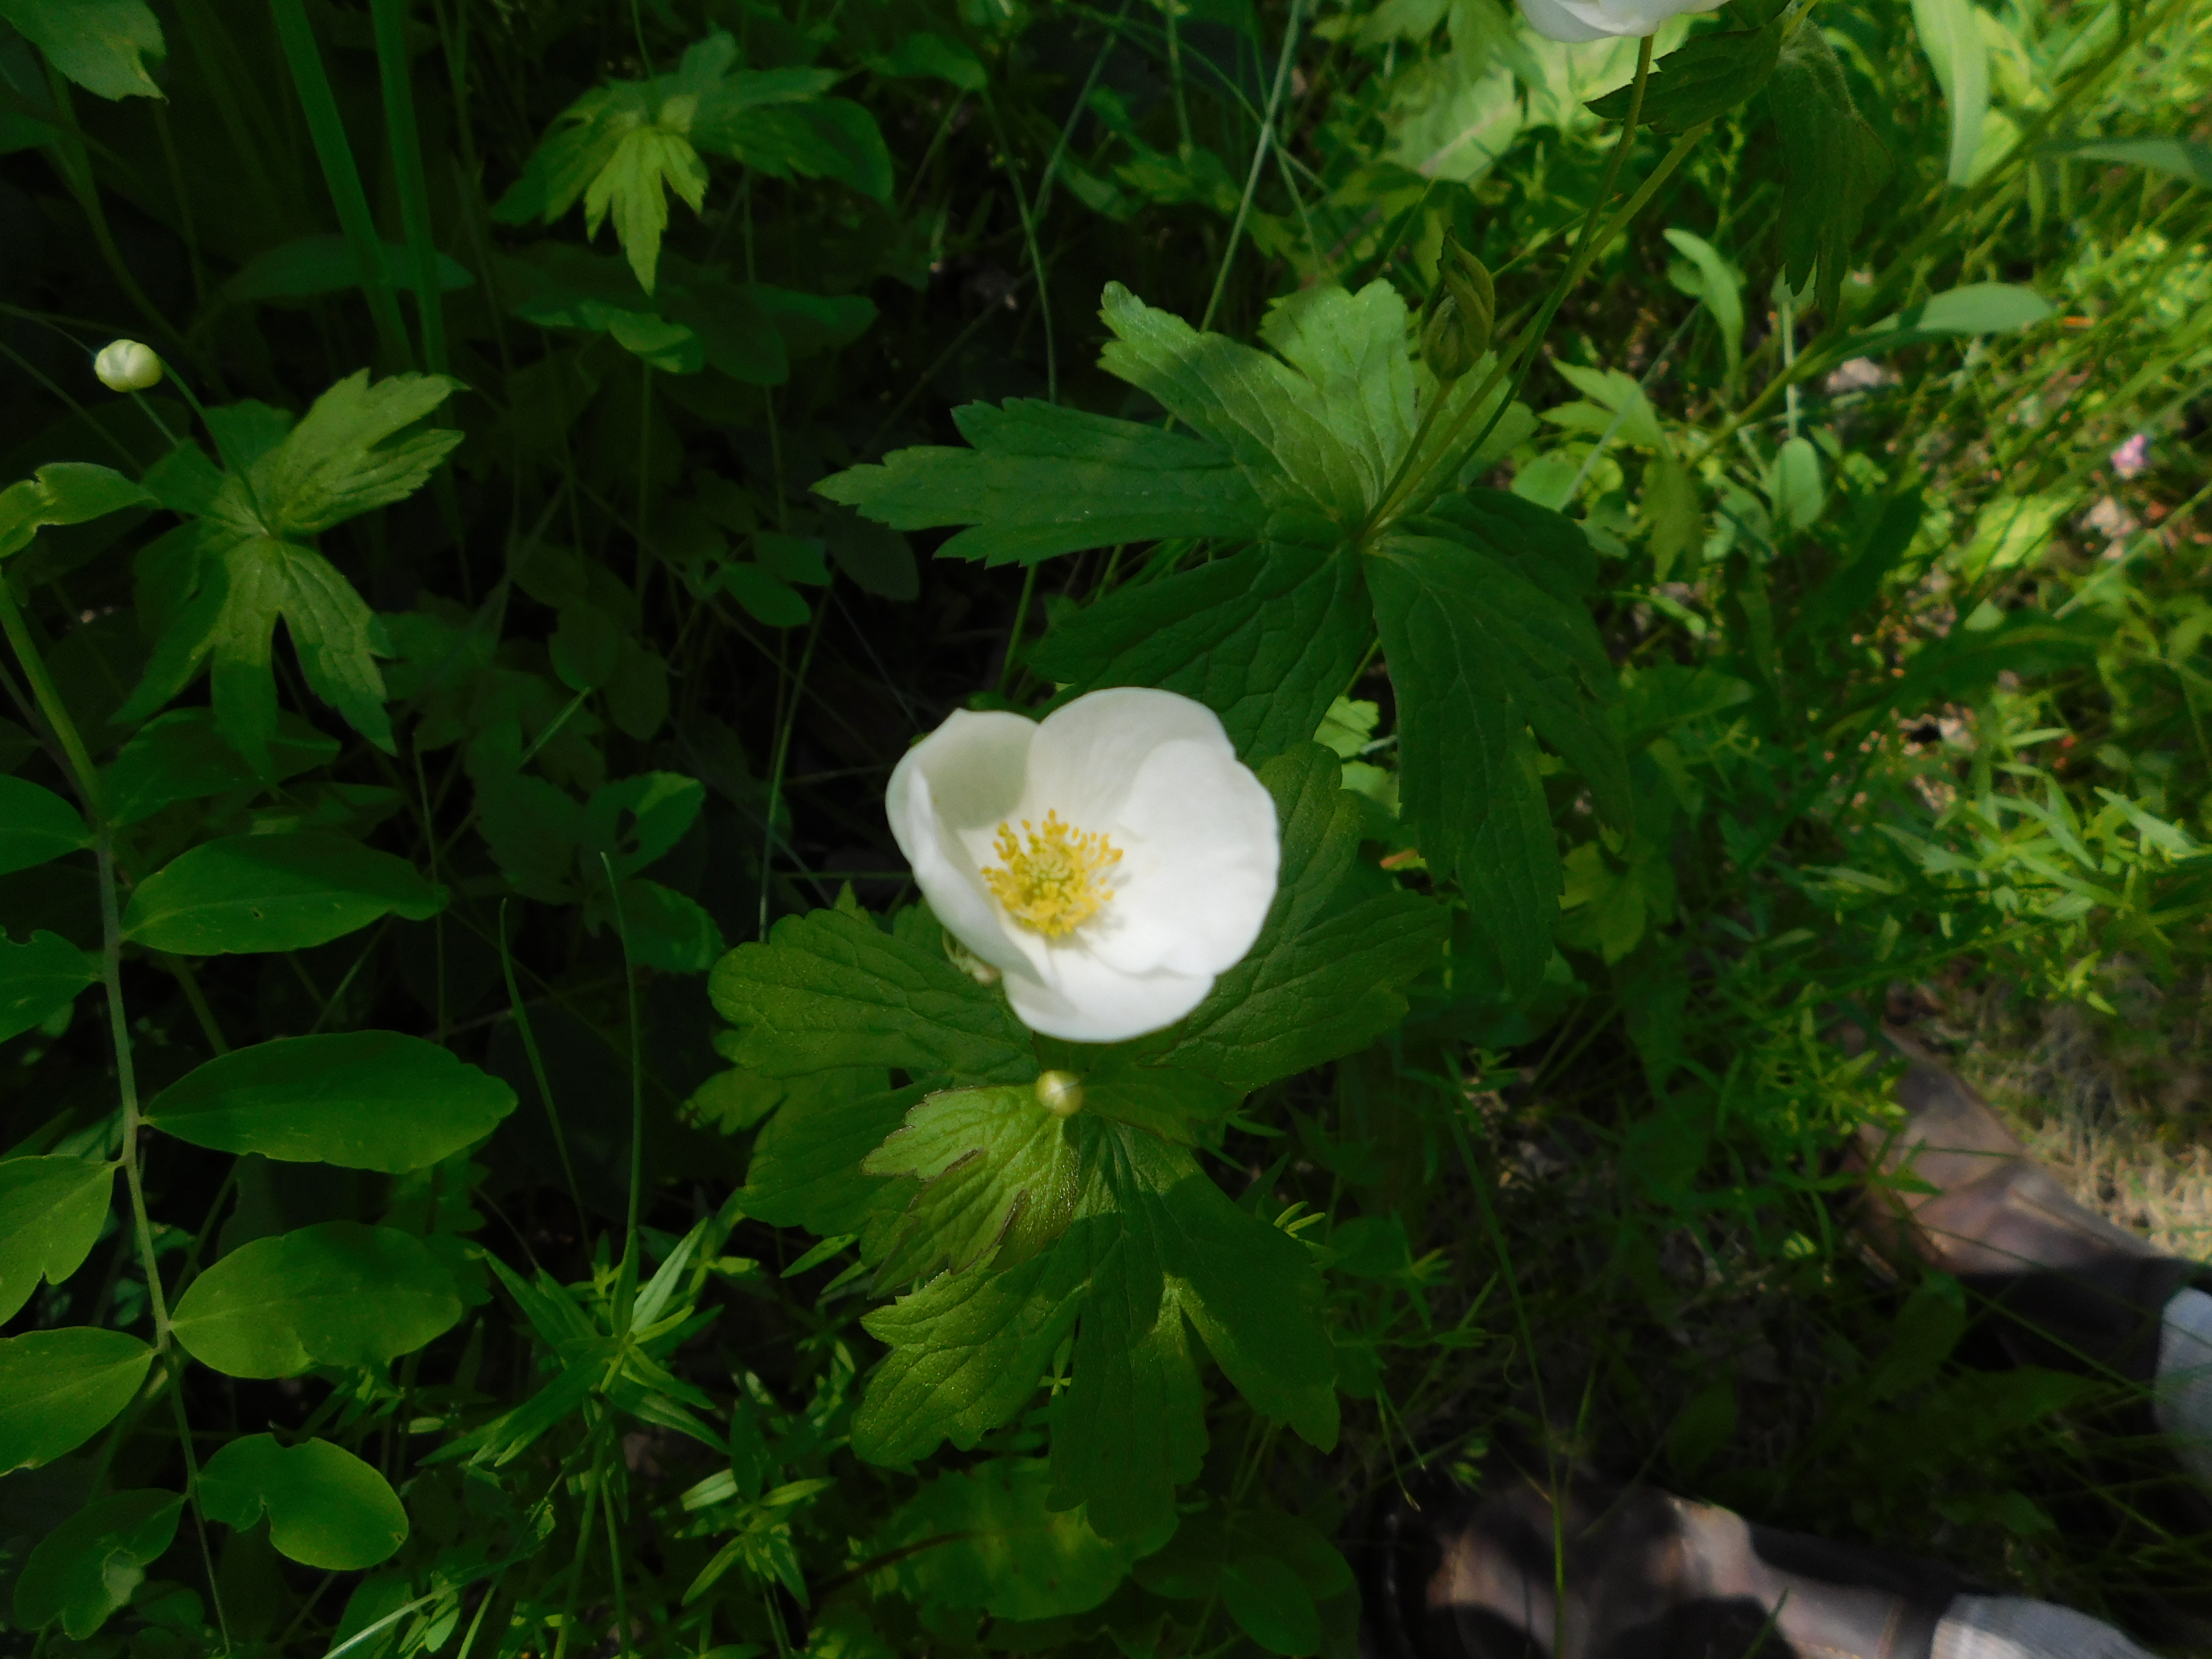 queen's butter cup found in Riding Mountain National Park